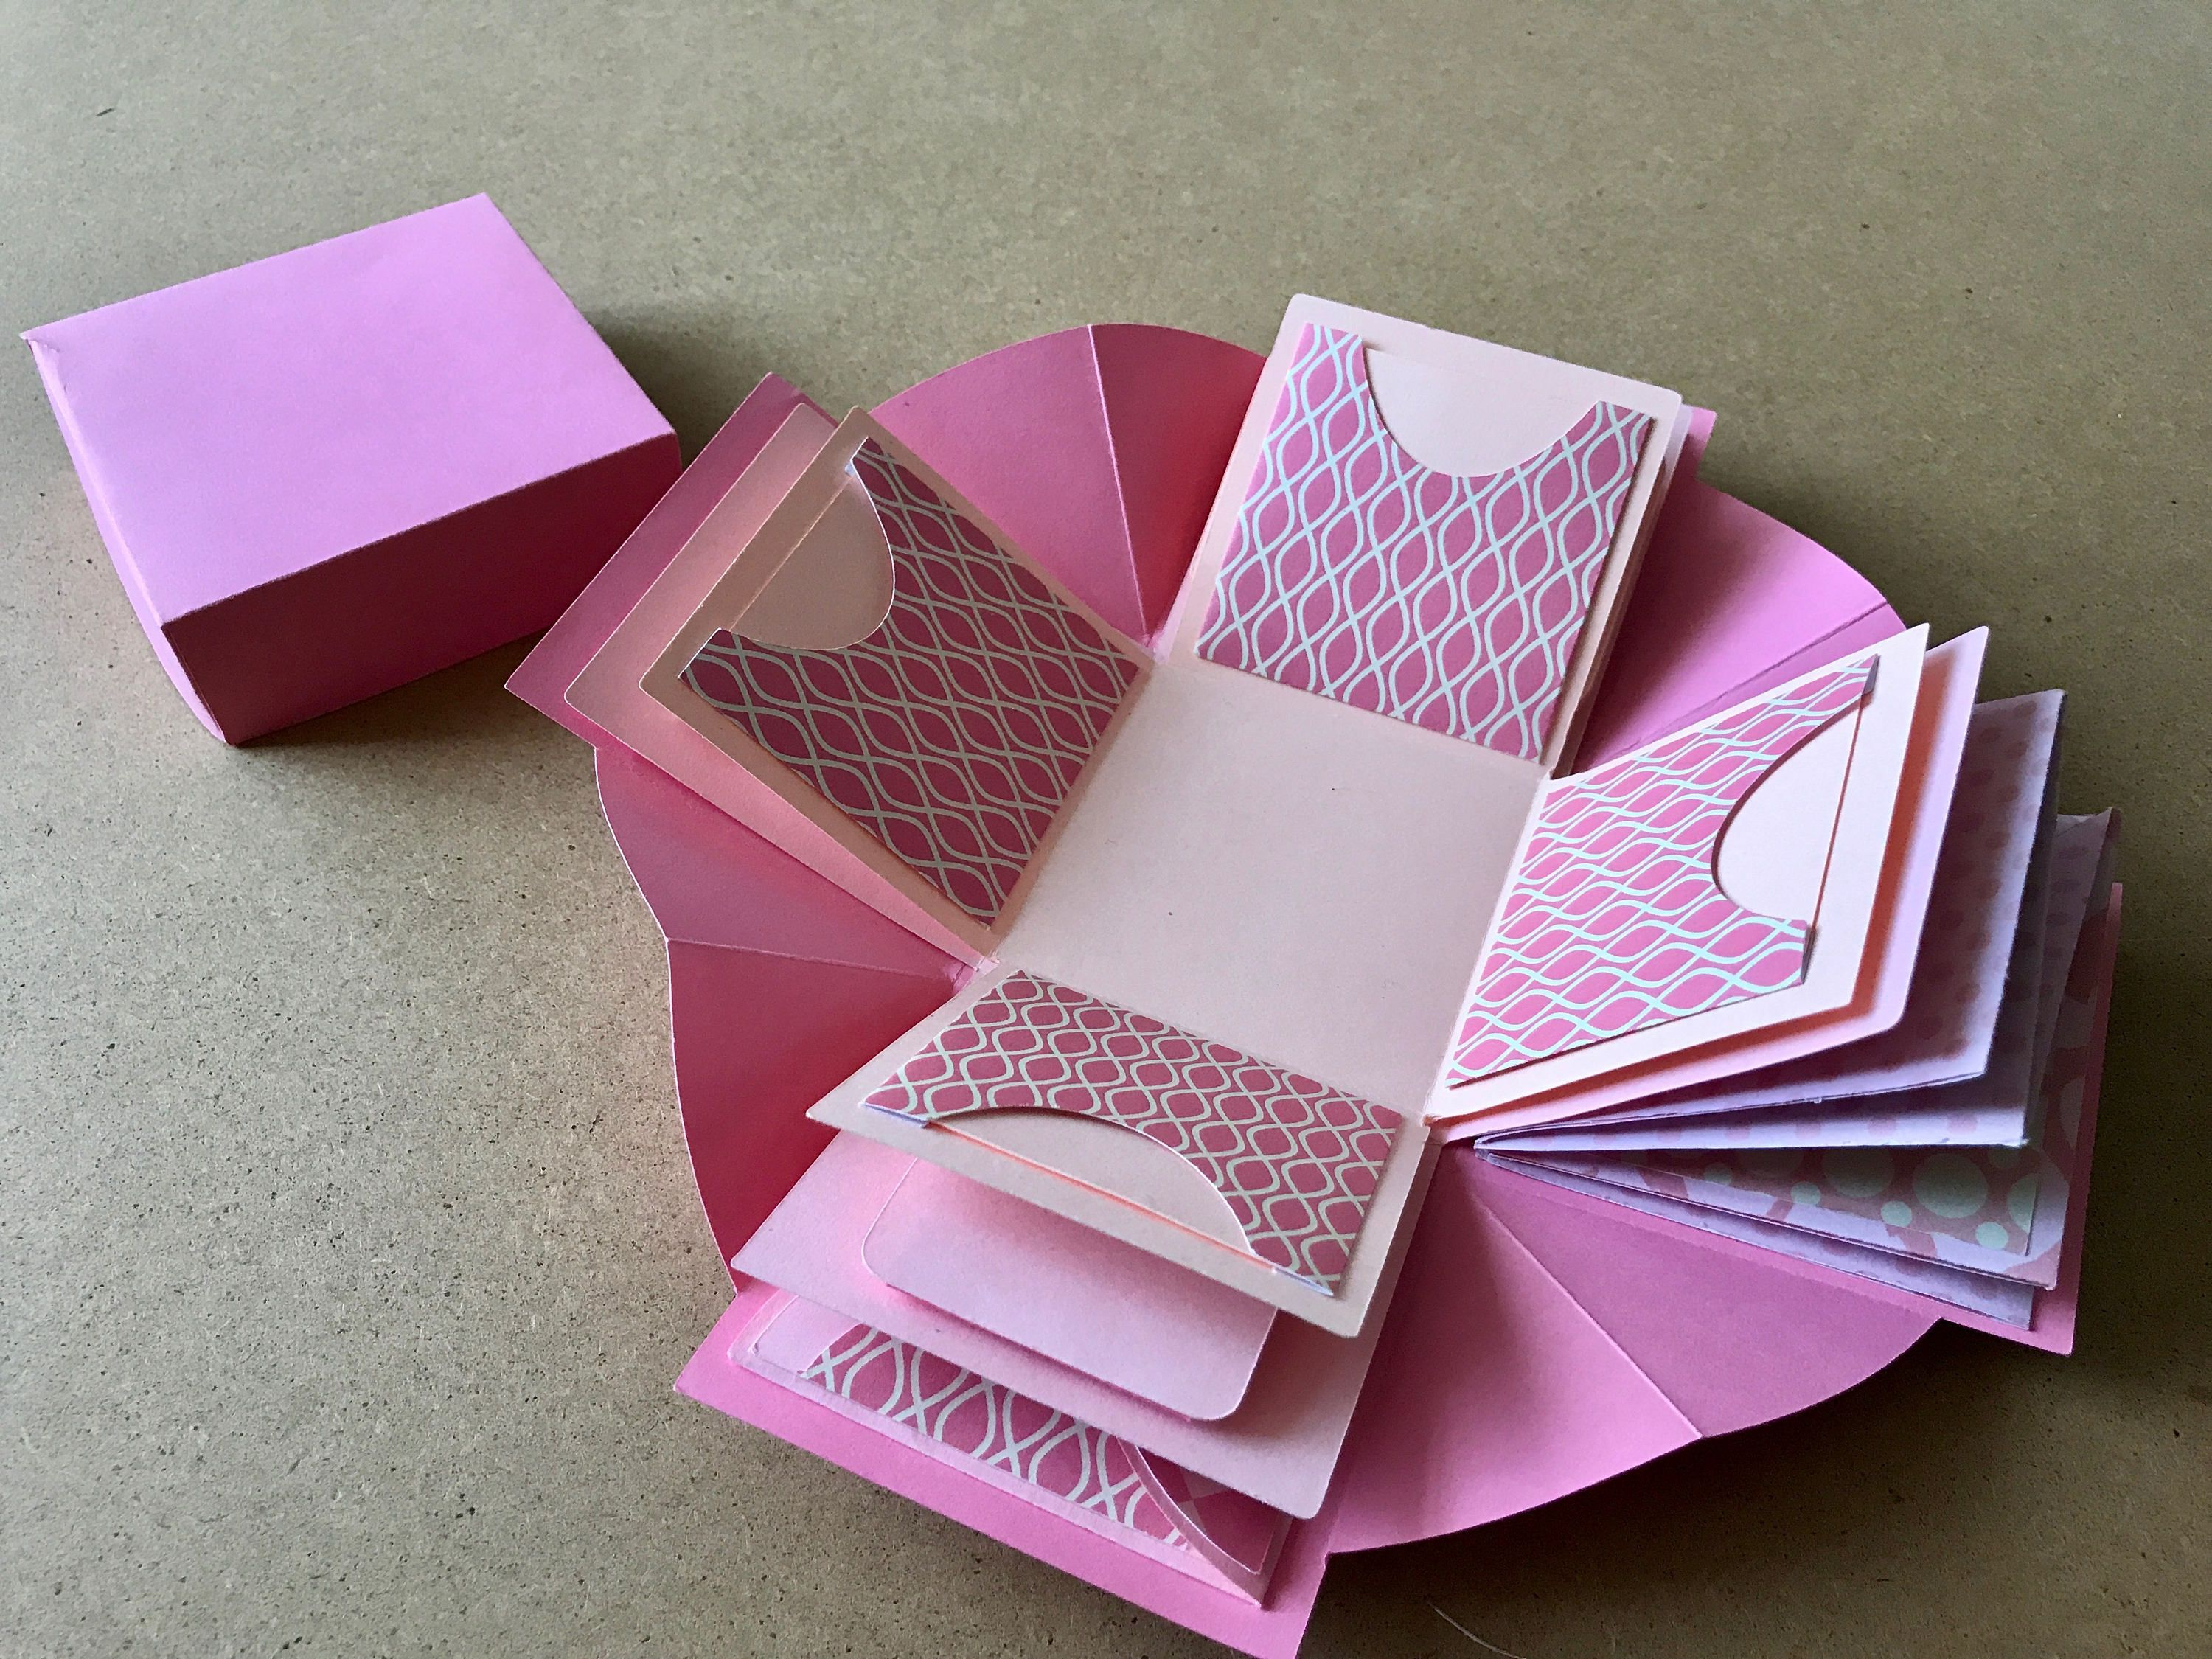 Complete Exploding Box SVG with Inserts | Cricut dream ...